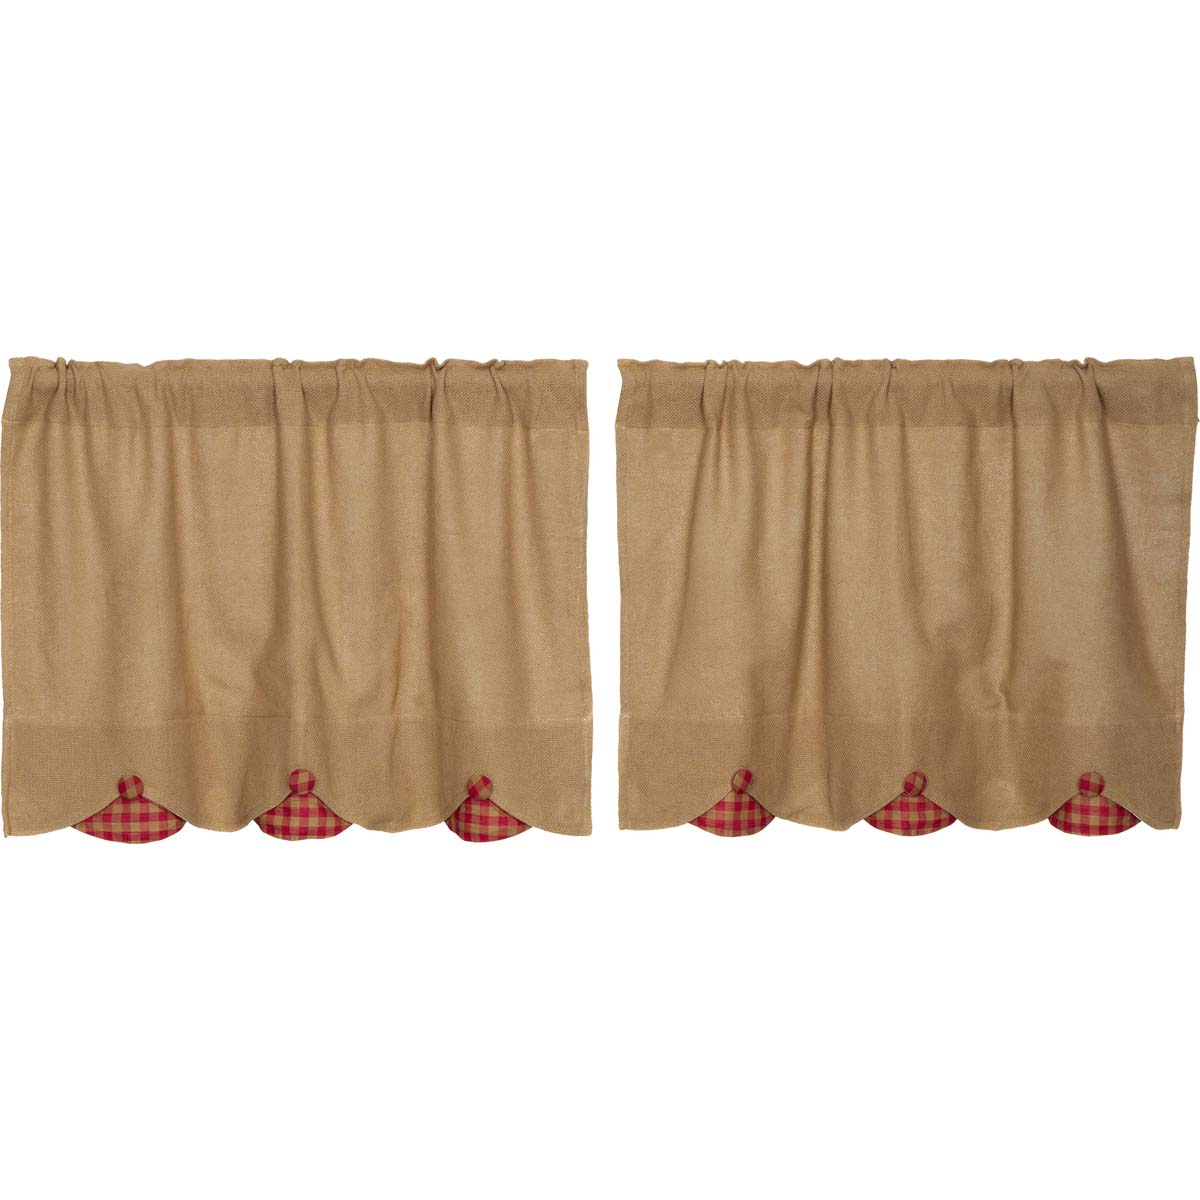 Burlap w/Red Check Scalloped Tier Set of 2 L24xW36